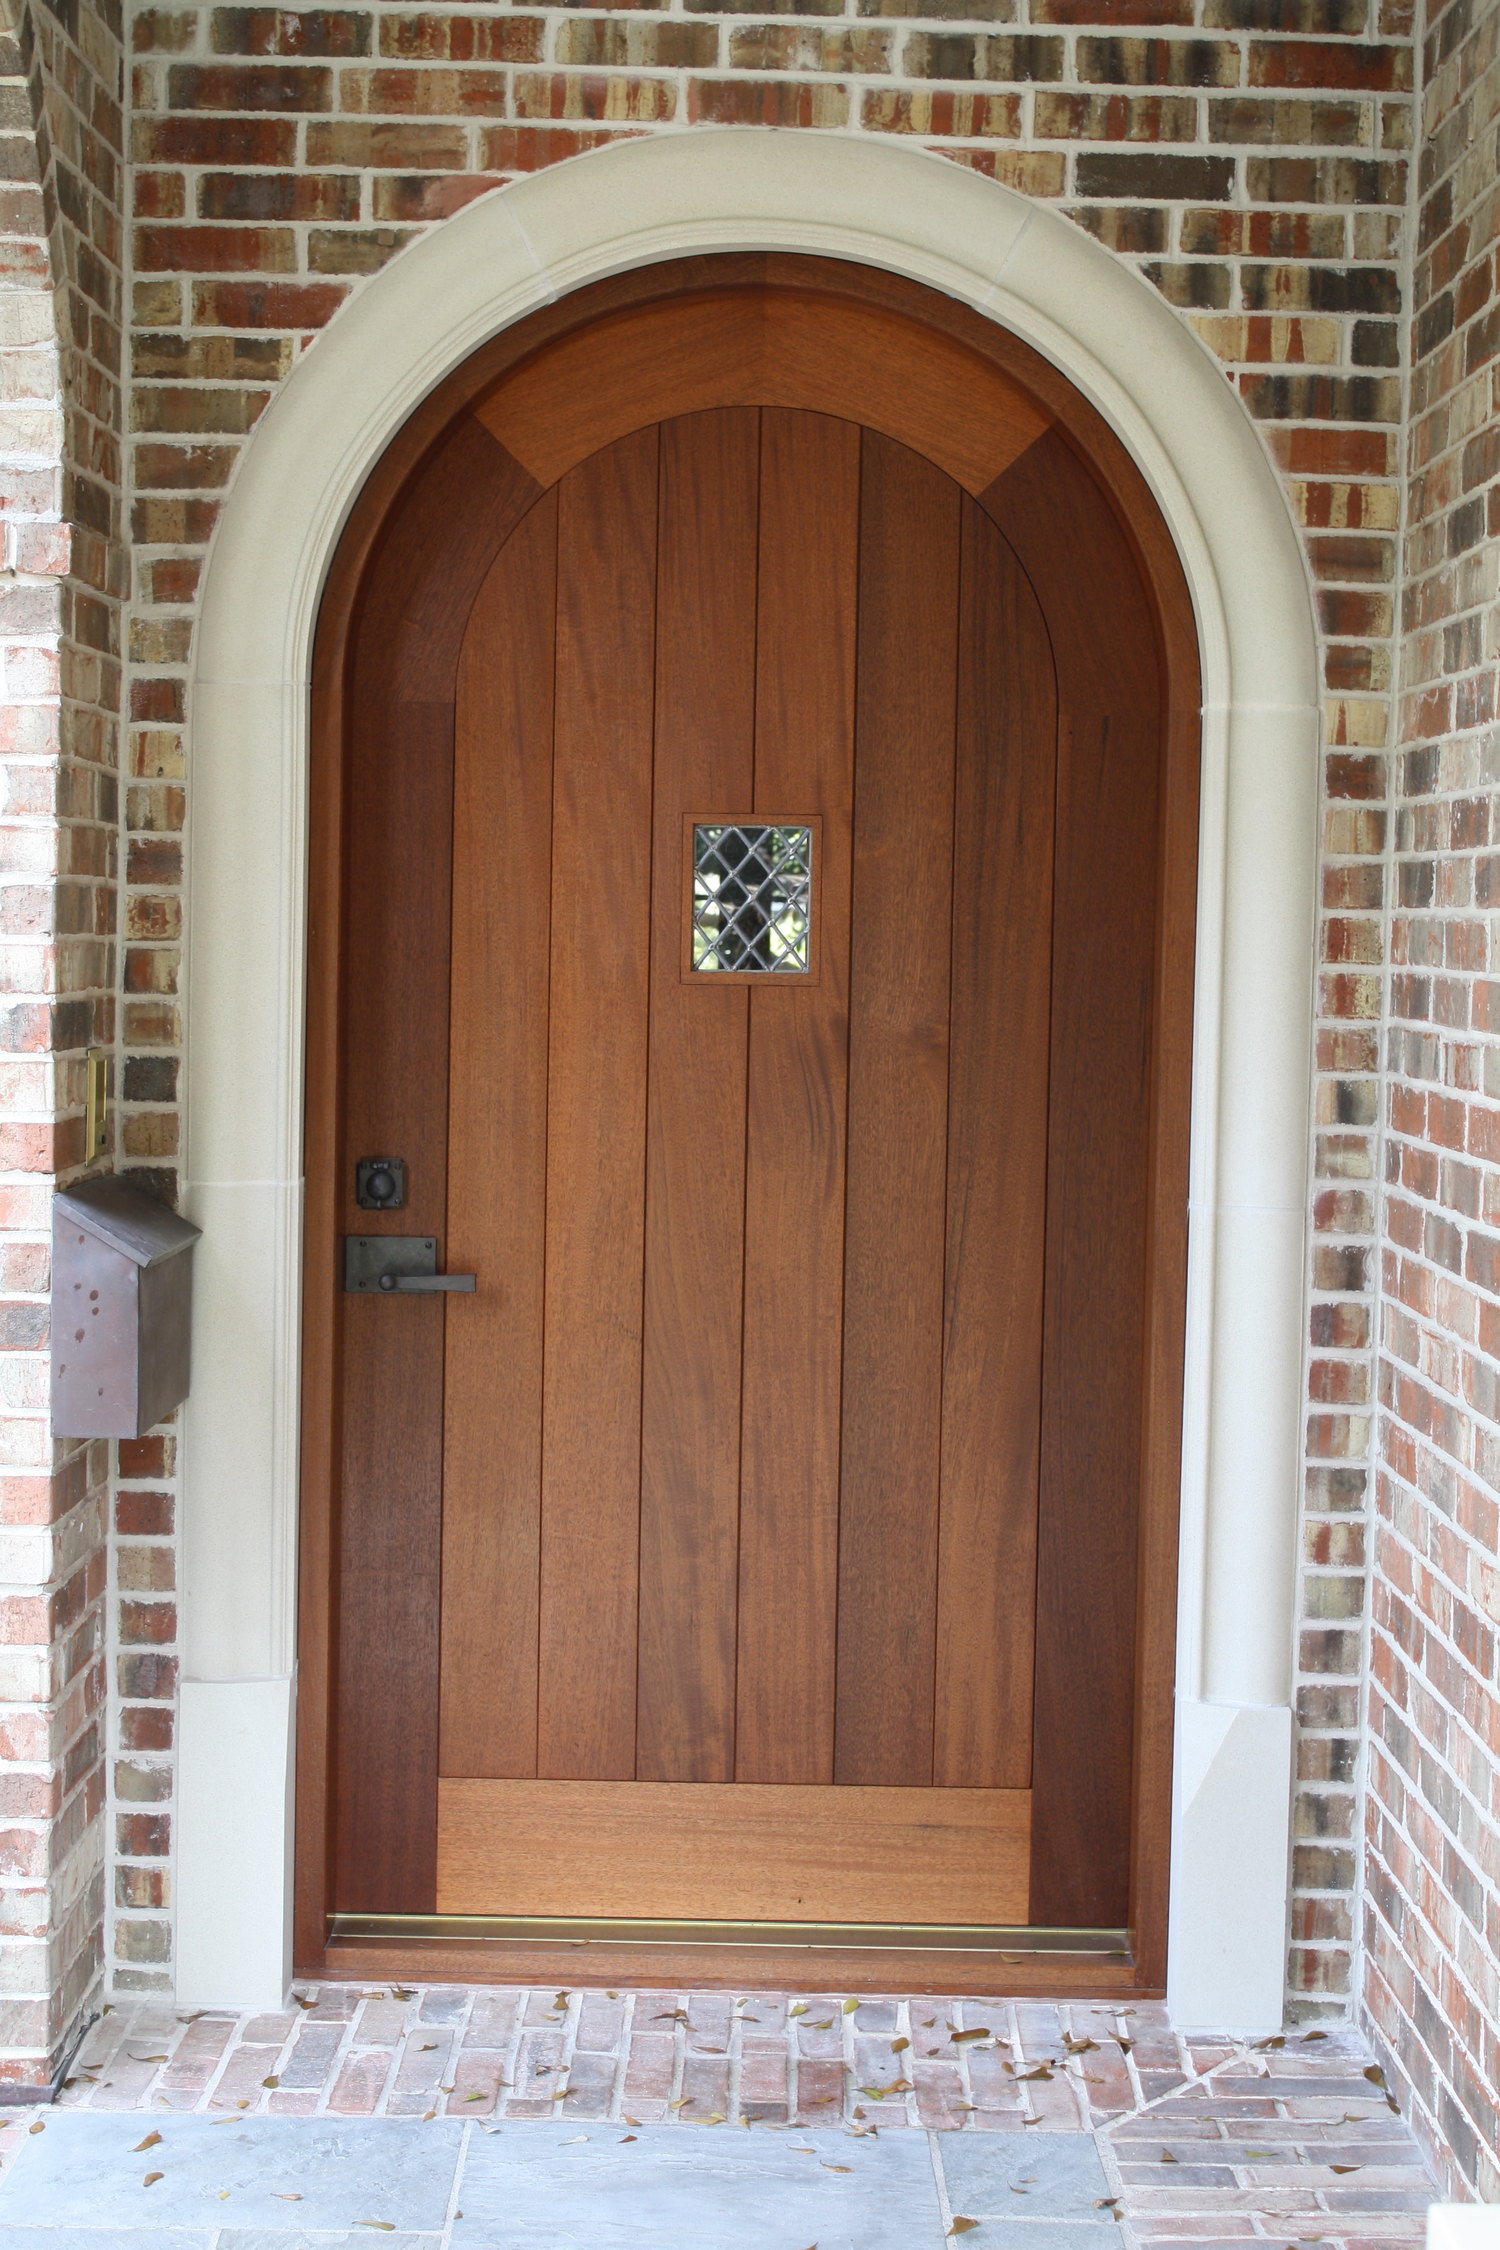 2250 #6C412C Mahogany Entry Door — Clark Kellogg wallpaper Mahogany Doors Houston 46051500